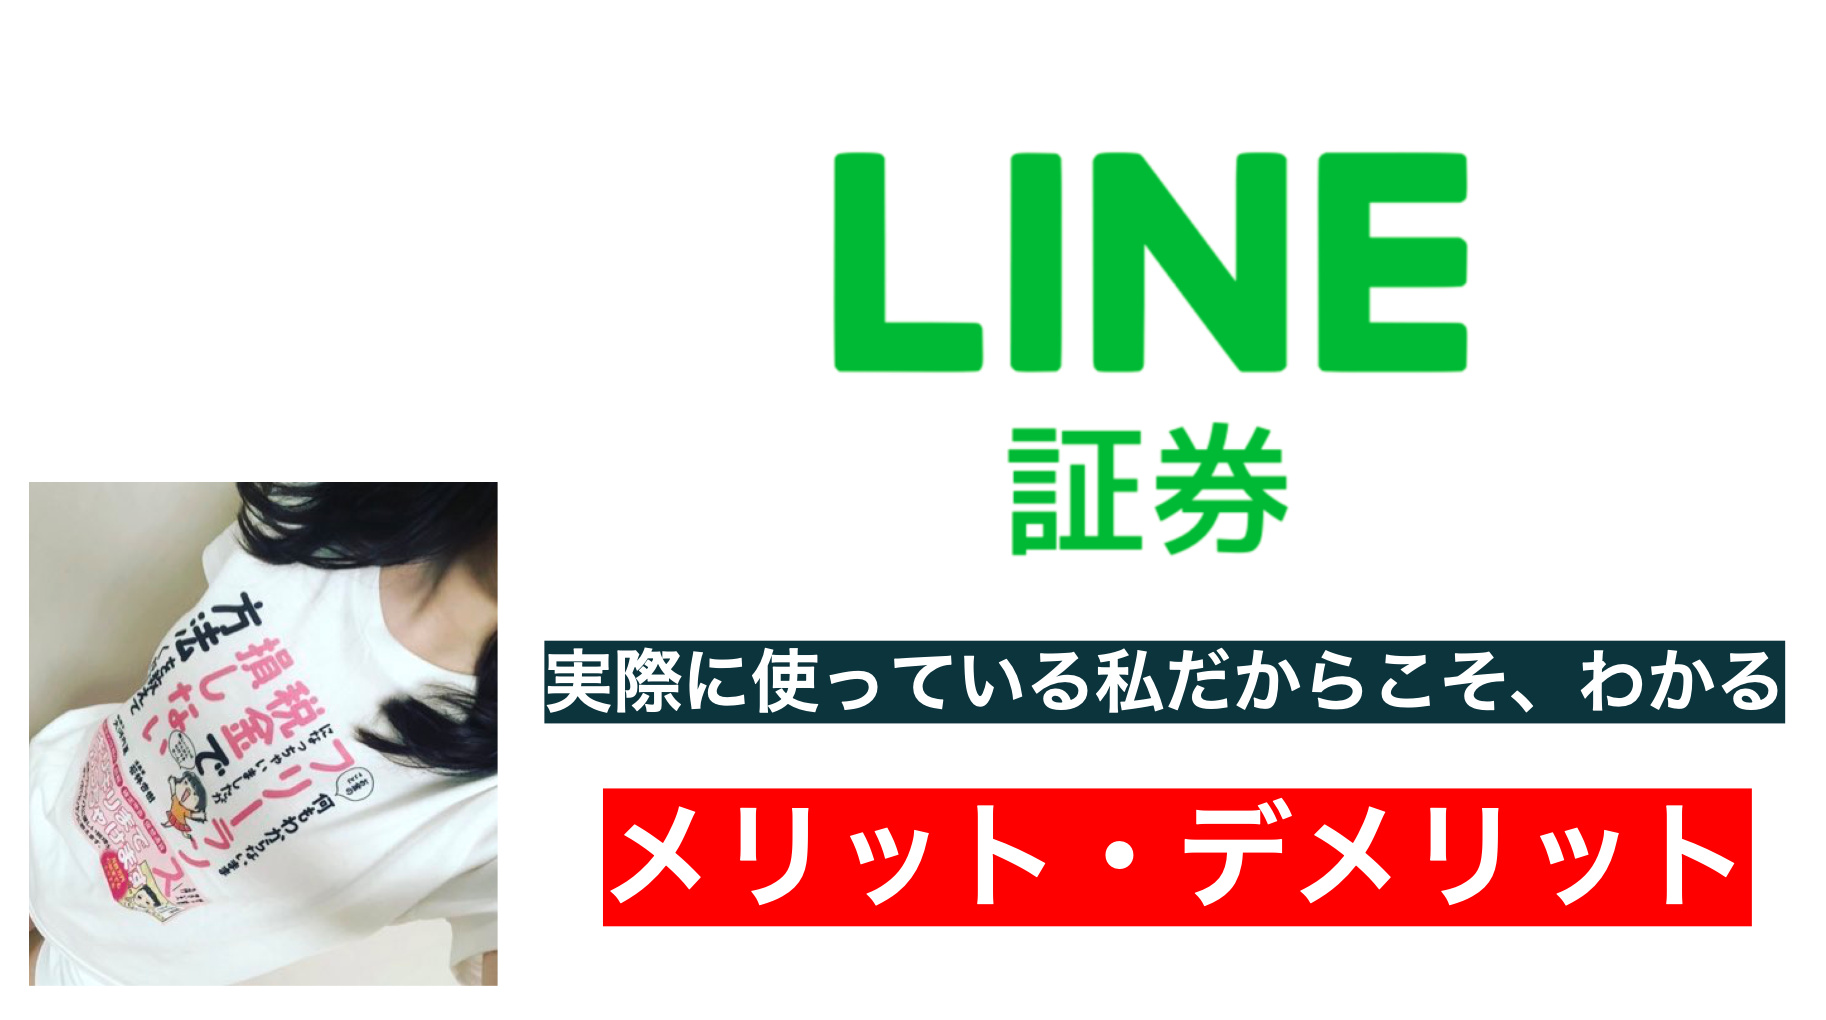 LINE証券 メリット デメリット